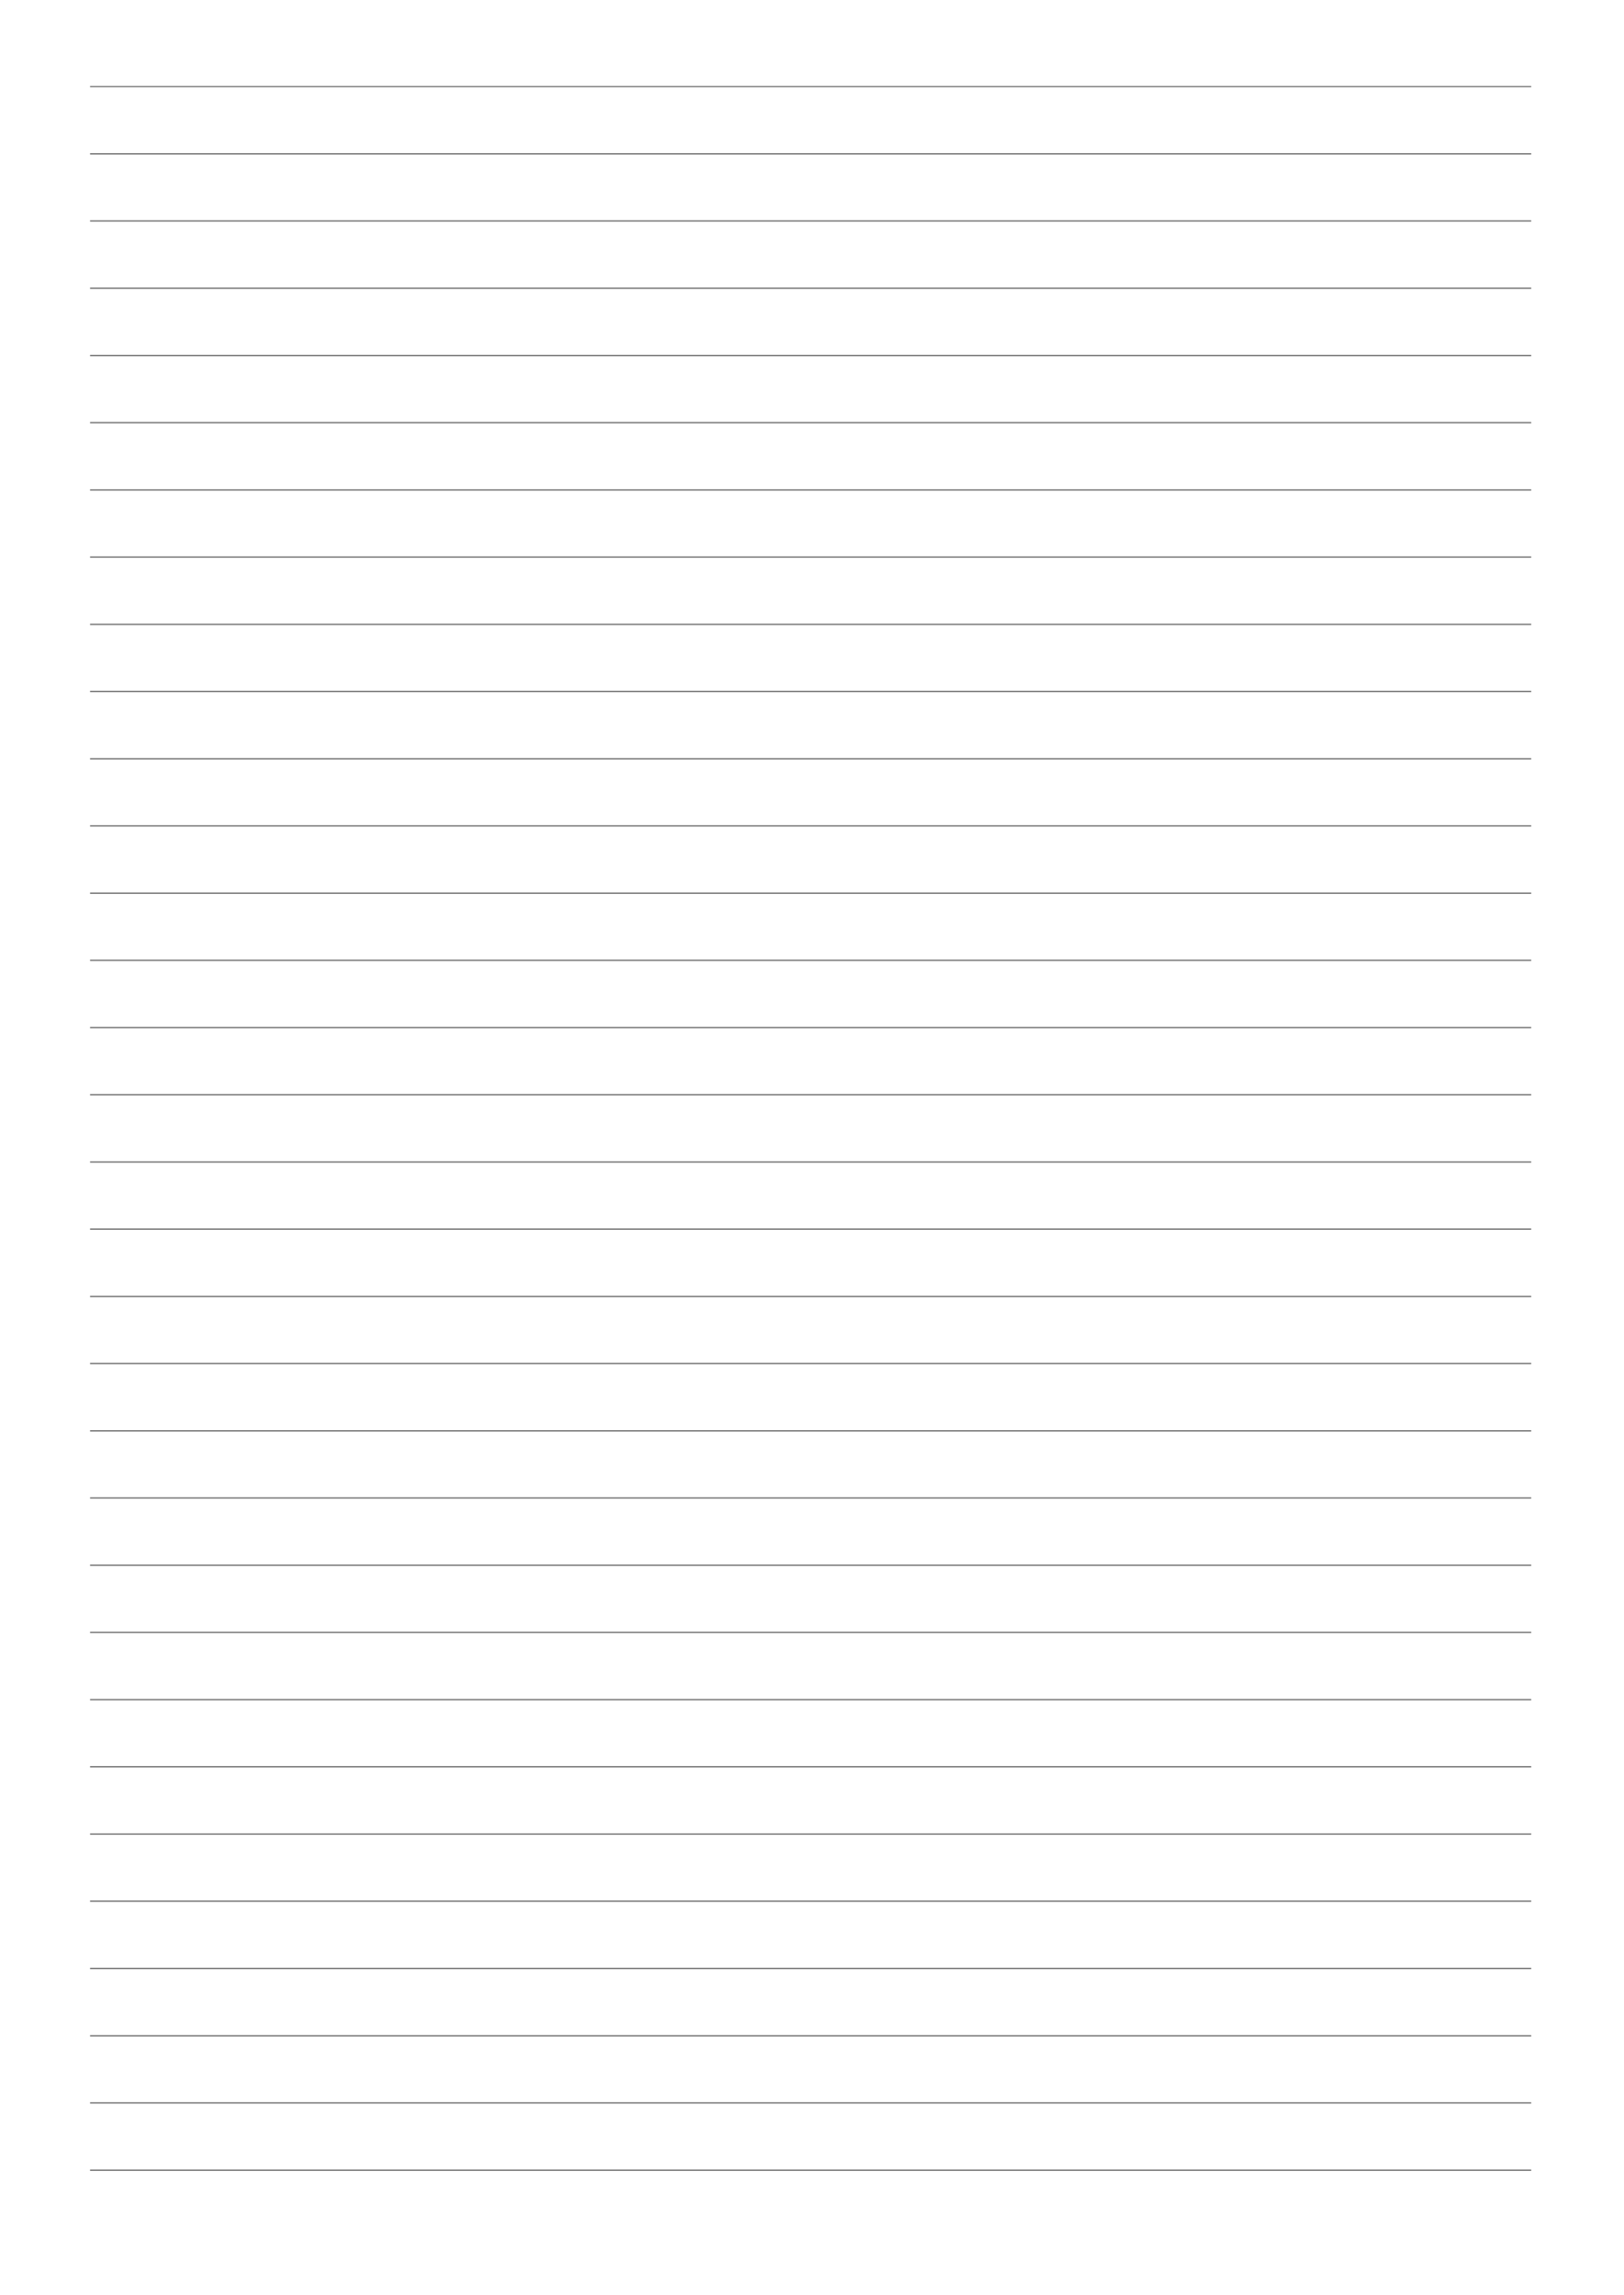 Wide Ruled Lined Paper Pdf